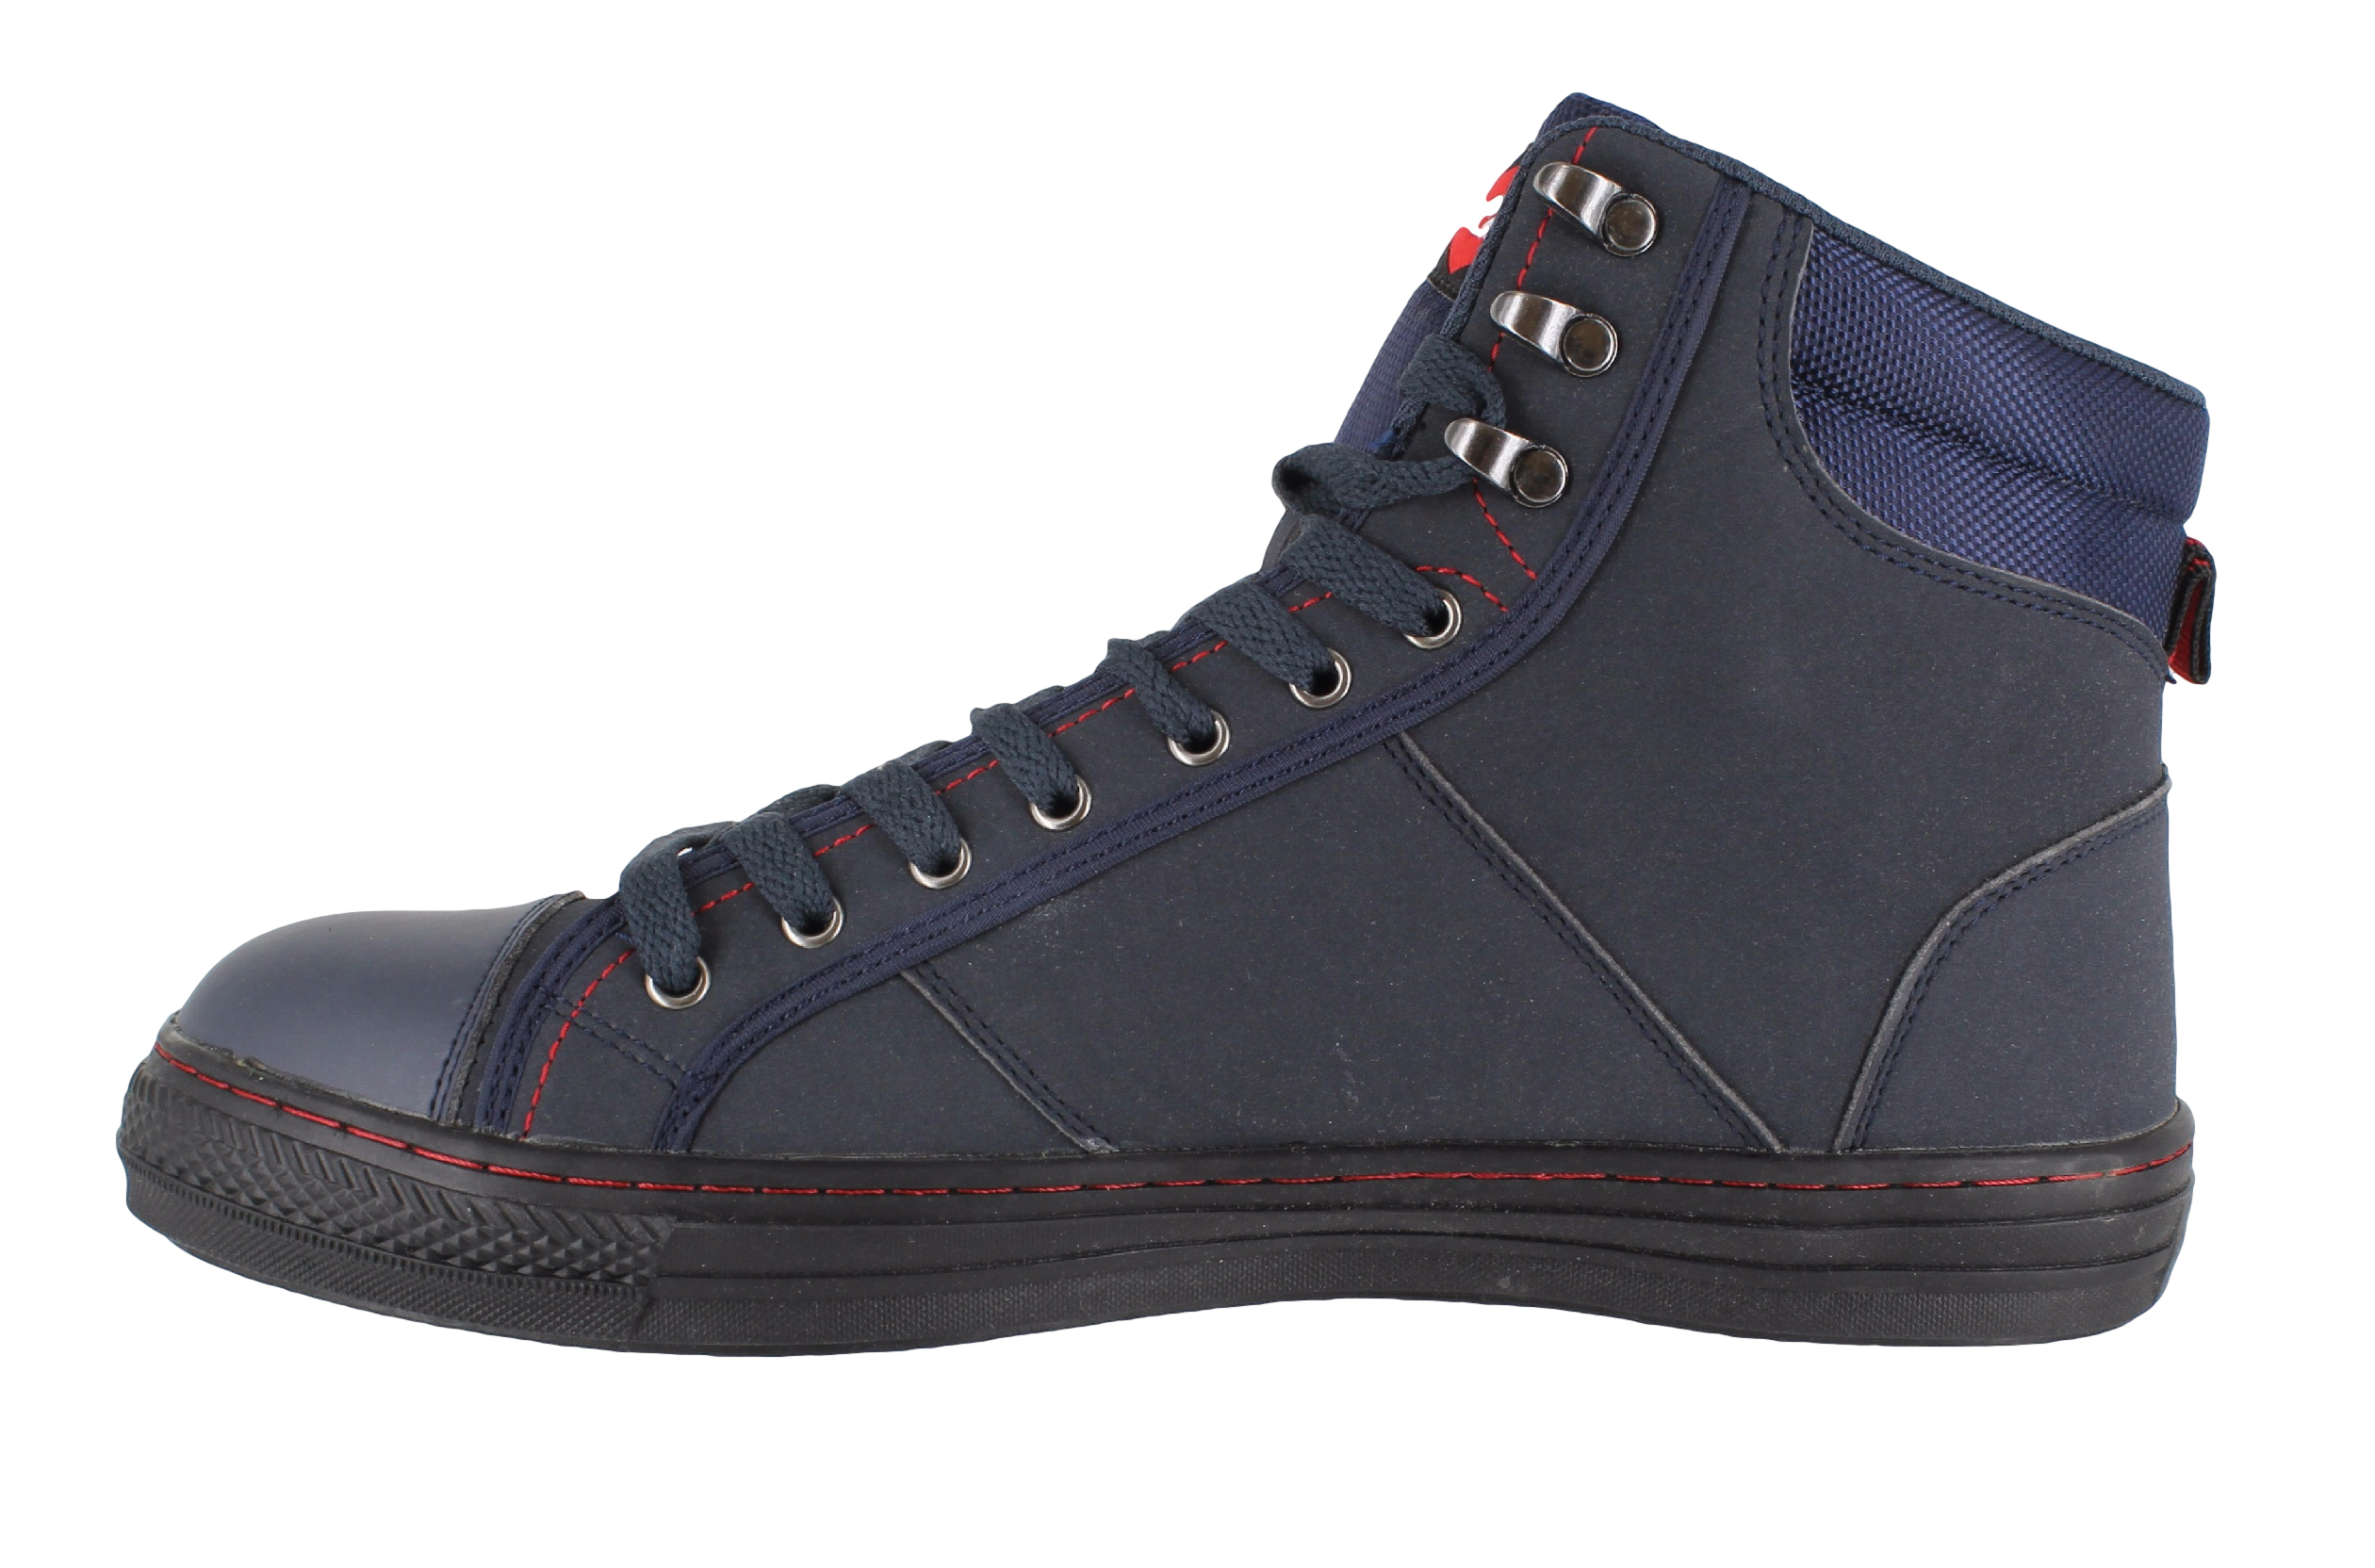 Mens Womens Lee Cooper Steel Toe SB Safety Baseball Boots High Top Sizes 3 To 12 | EBay